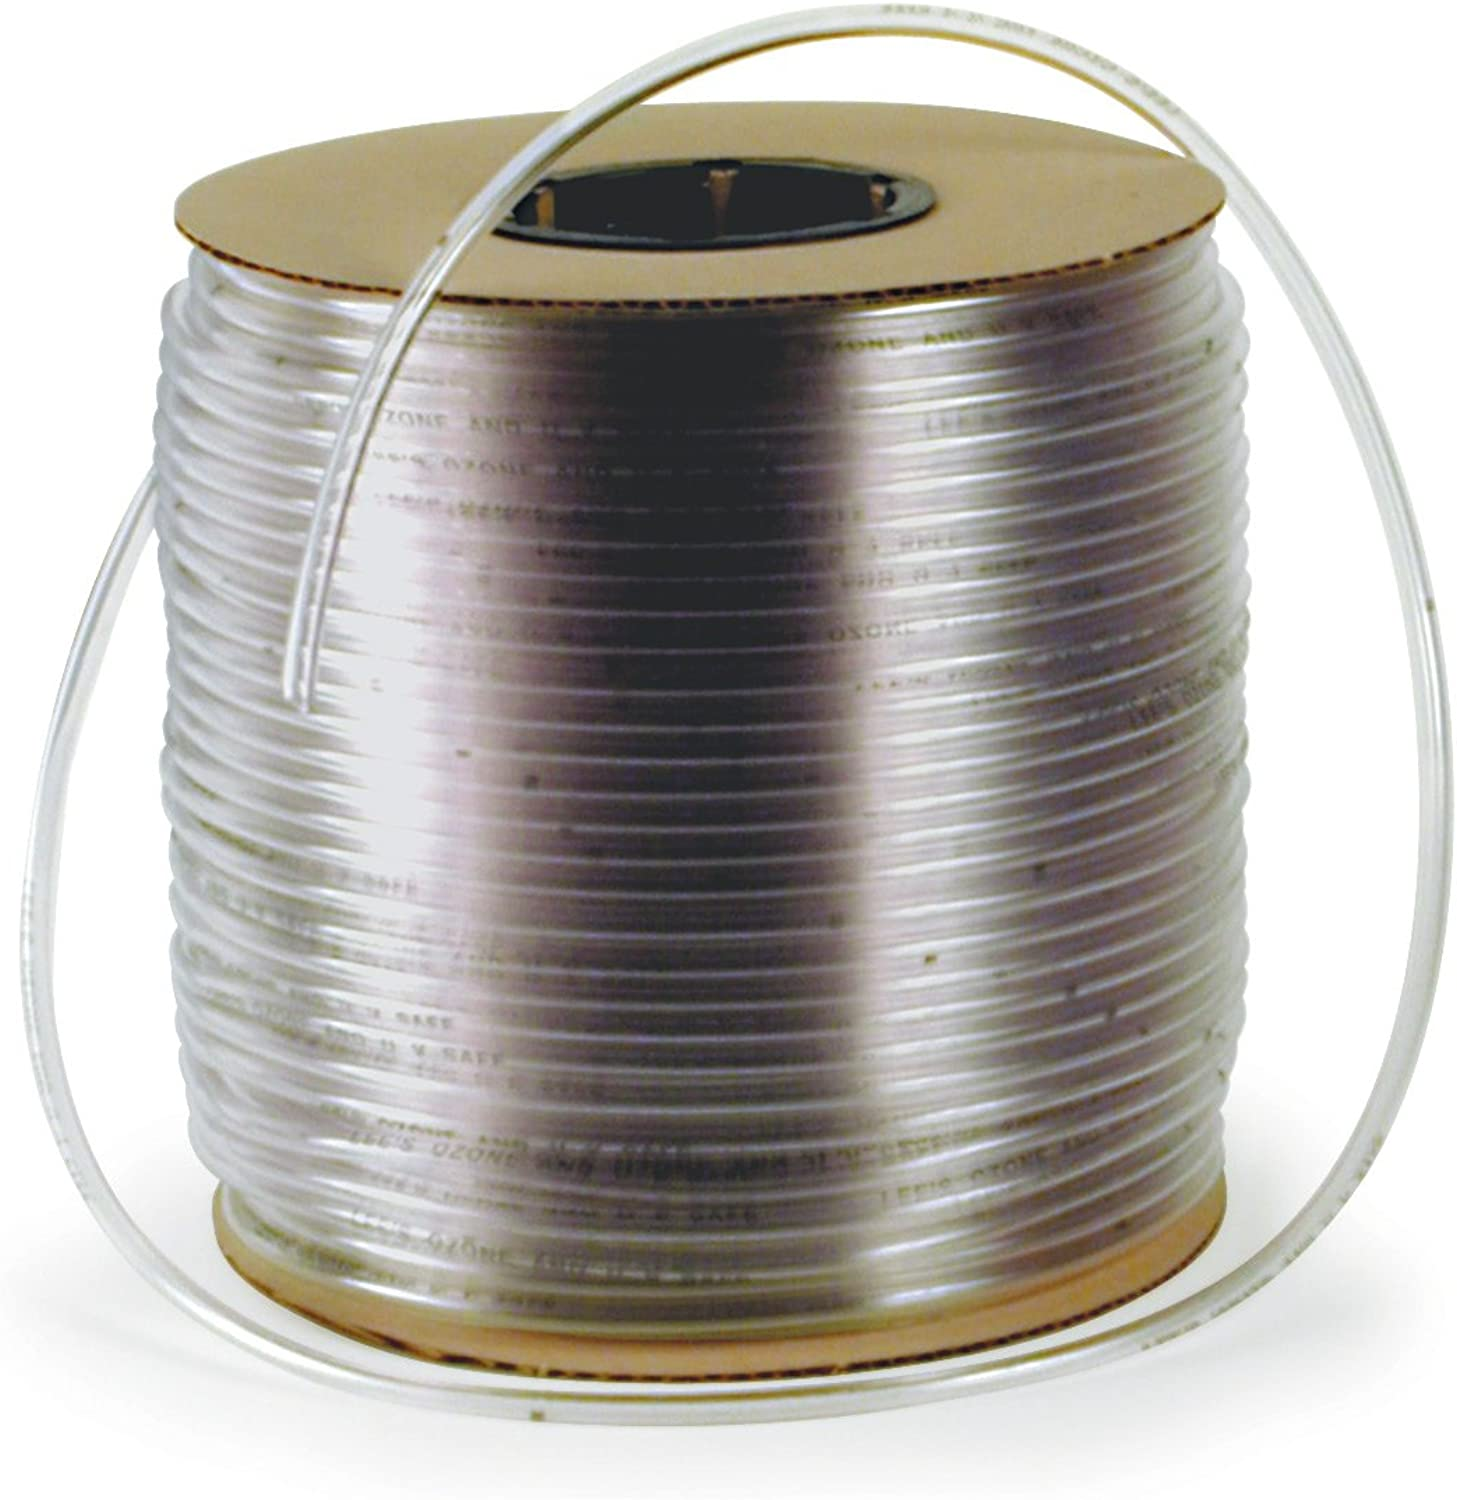 Lee's Economy 500Foot Airline Tubing Spool  72 Ounce